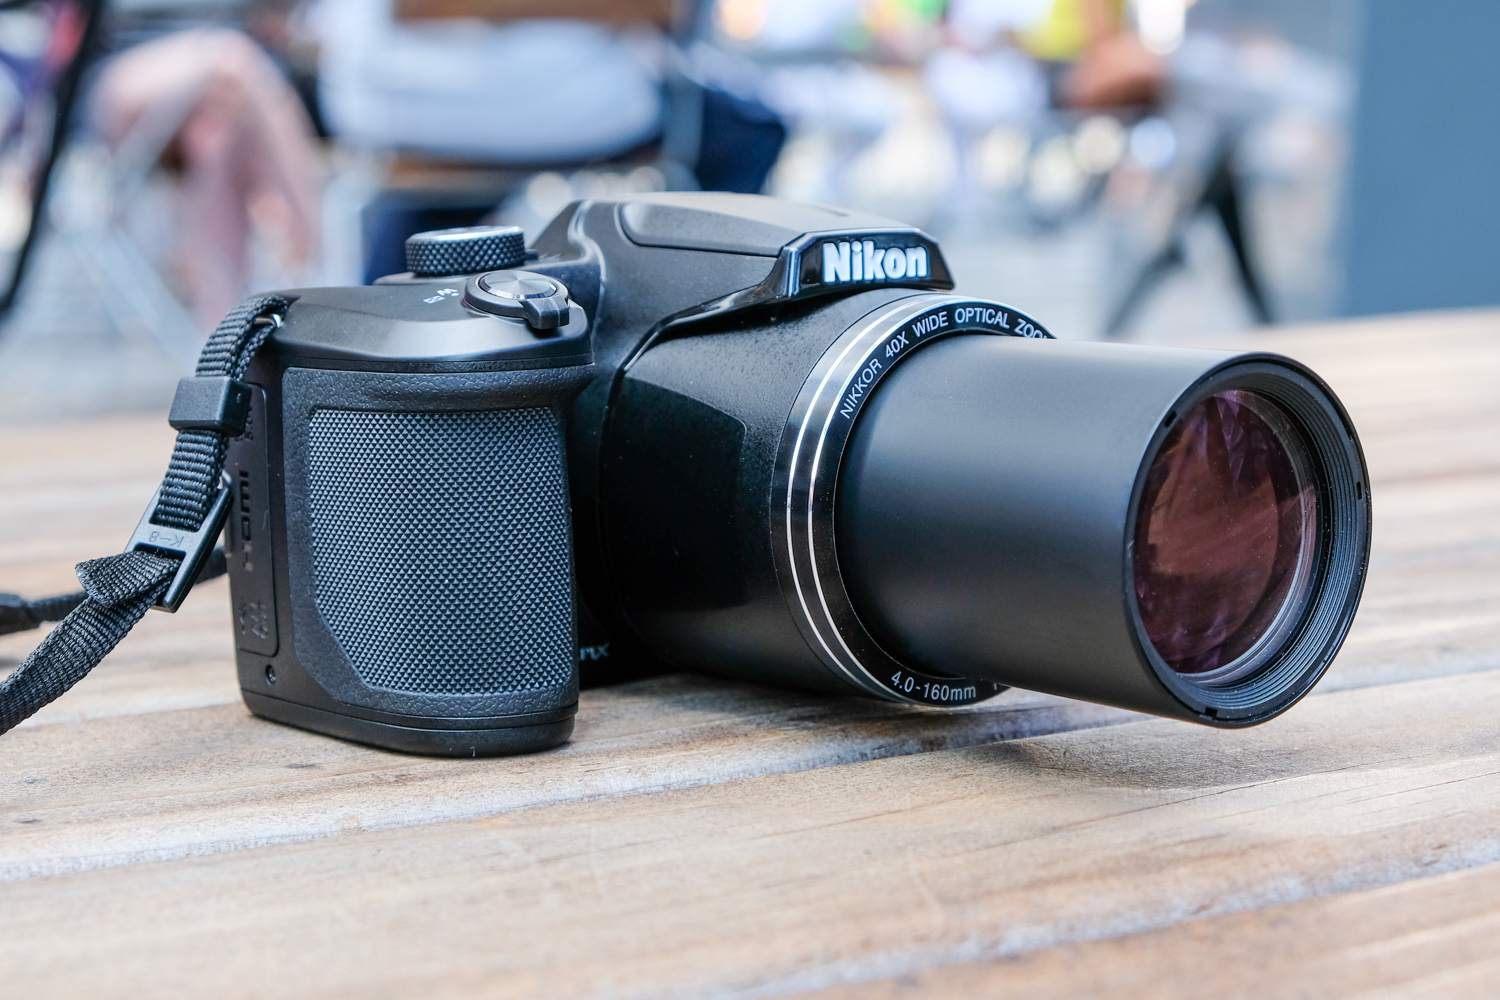 9 Of The Most Expensive Digital Cameras On Earth - Refined Guy